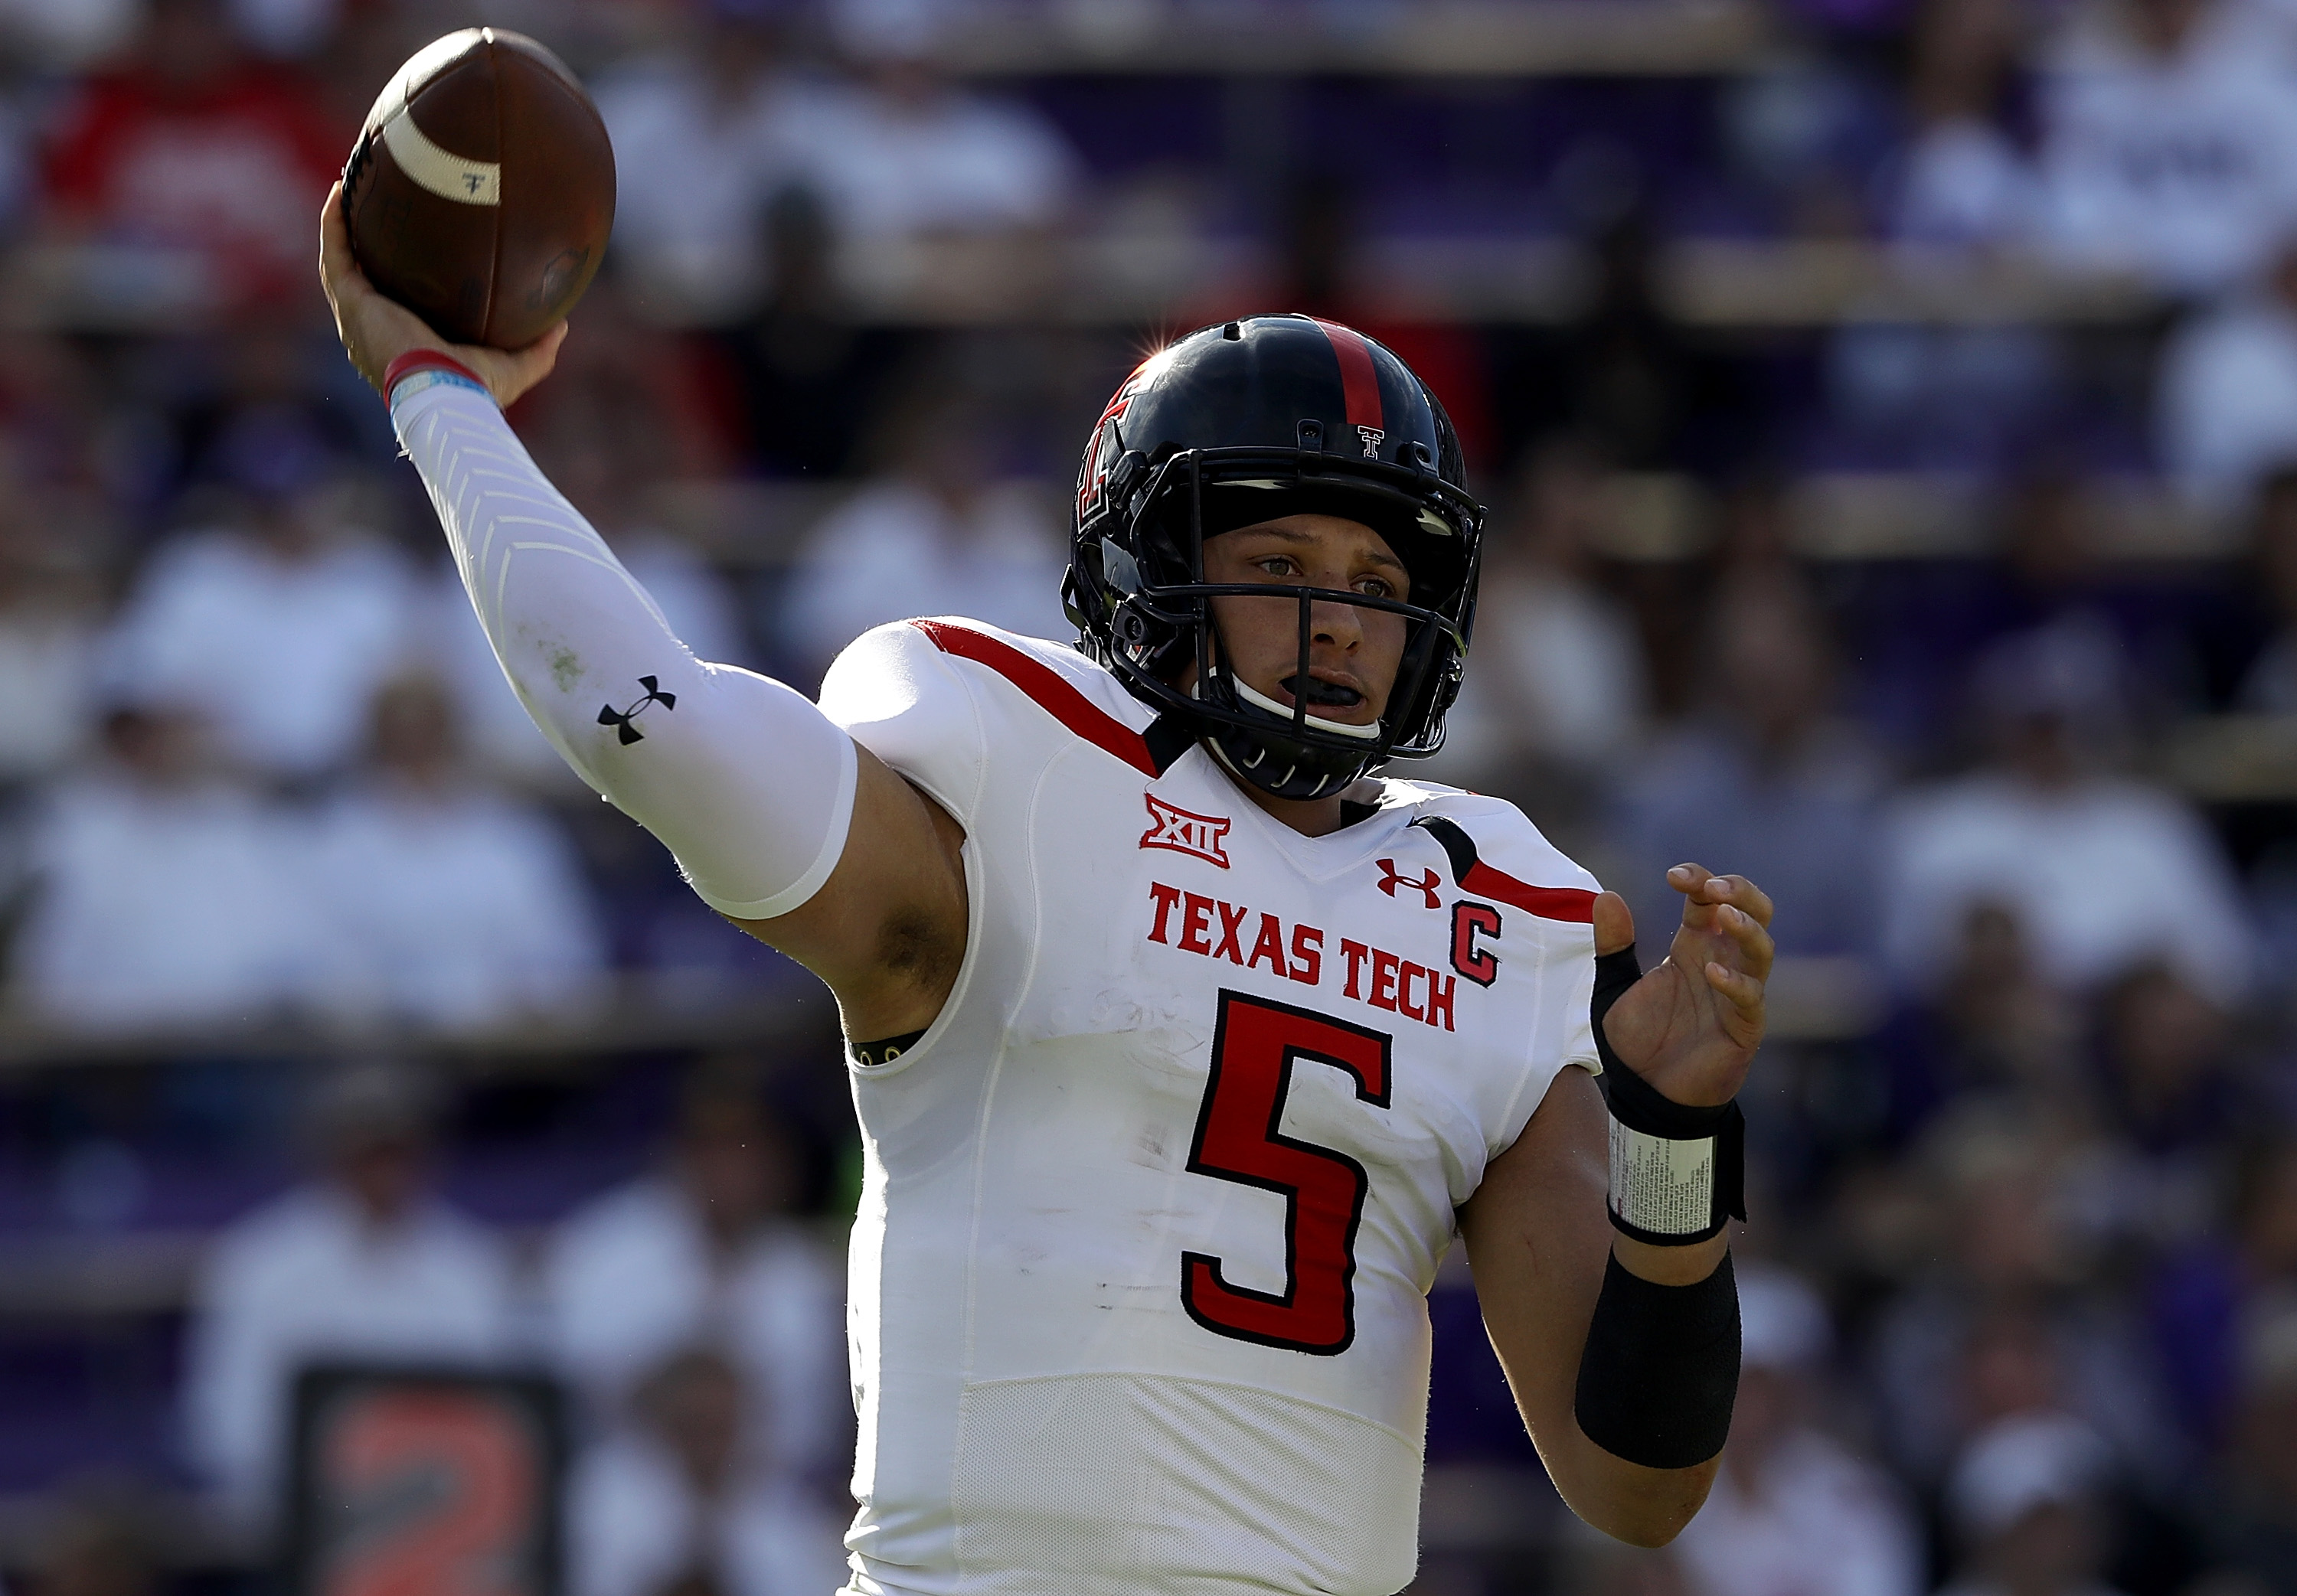 Texas Tech cornerback Patrick Mahomes is in the running to be the first quarterback selected in the NFL Draft later this month. (Getty Images)